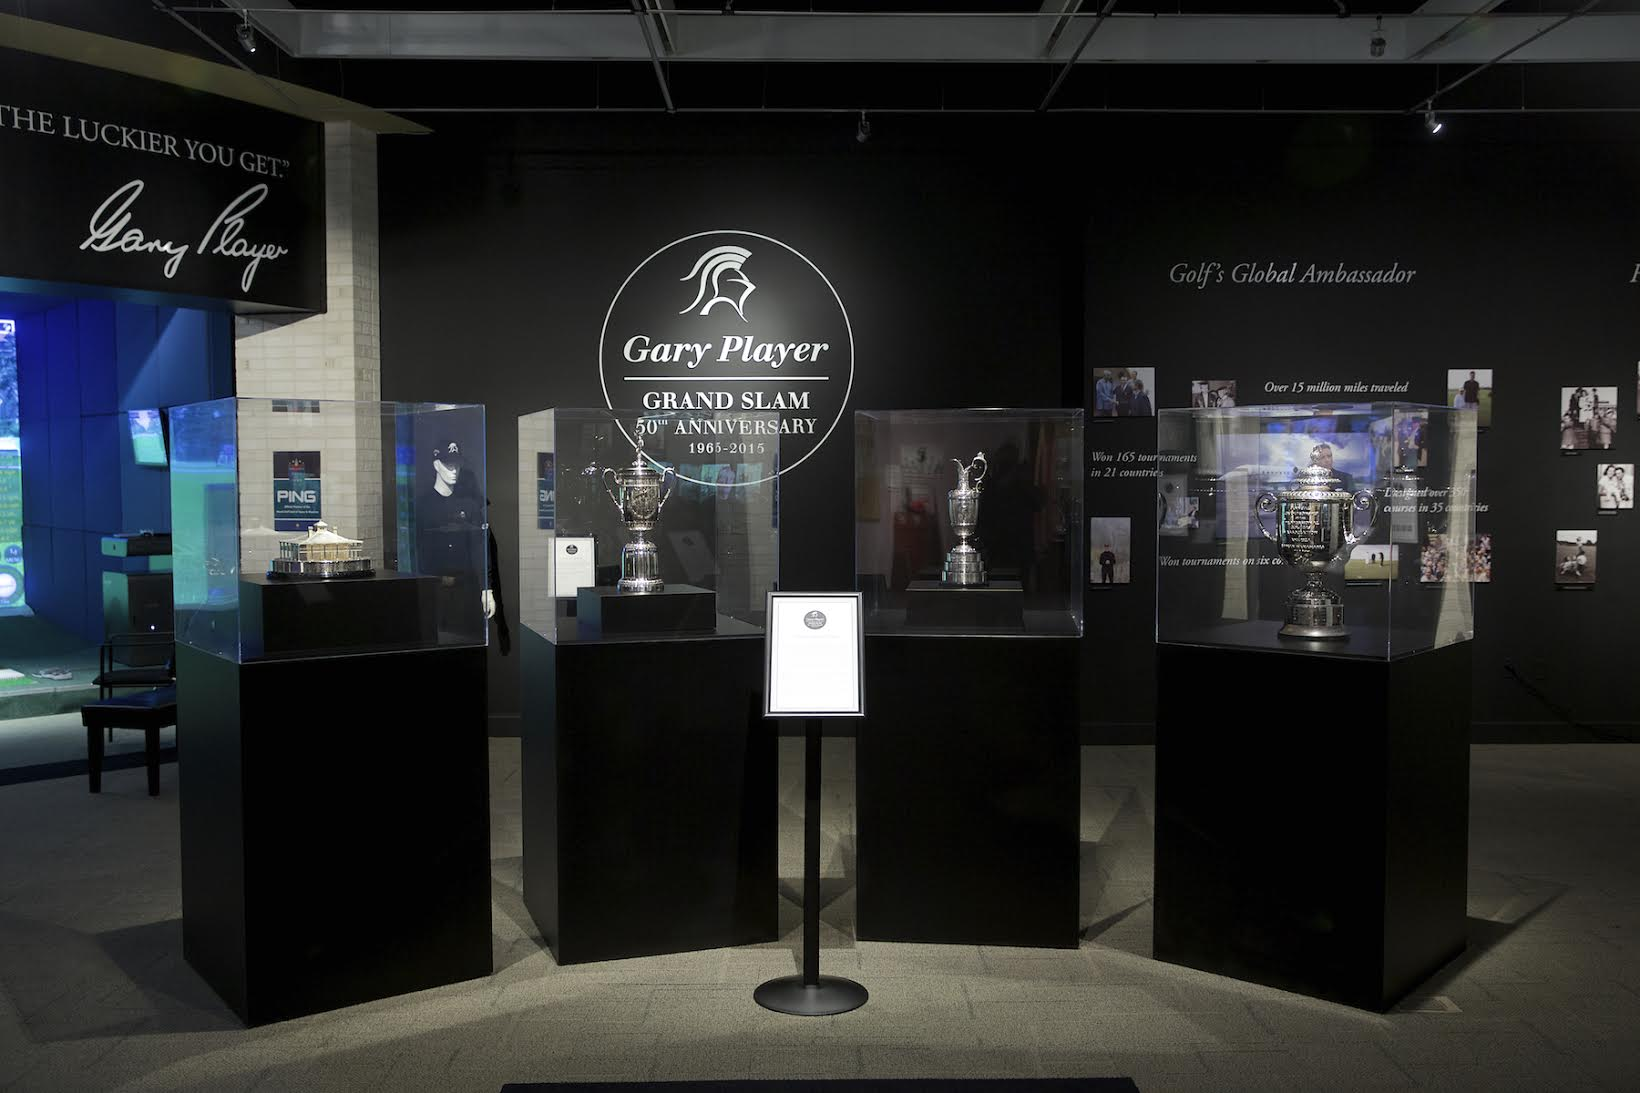 World Golf Hall Of Fame Museum Opens Gary Player Grand Slam Success Exhibition